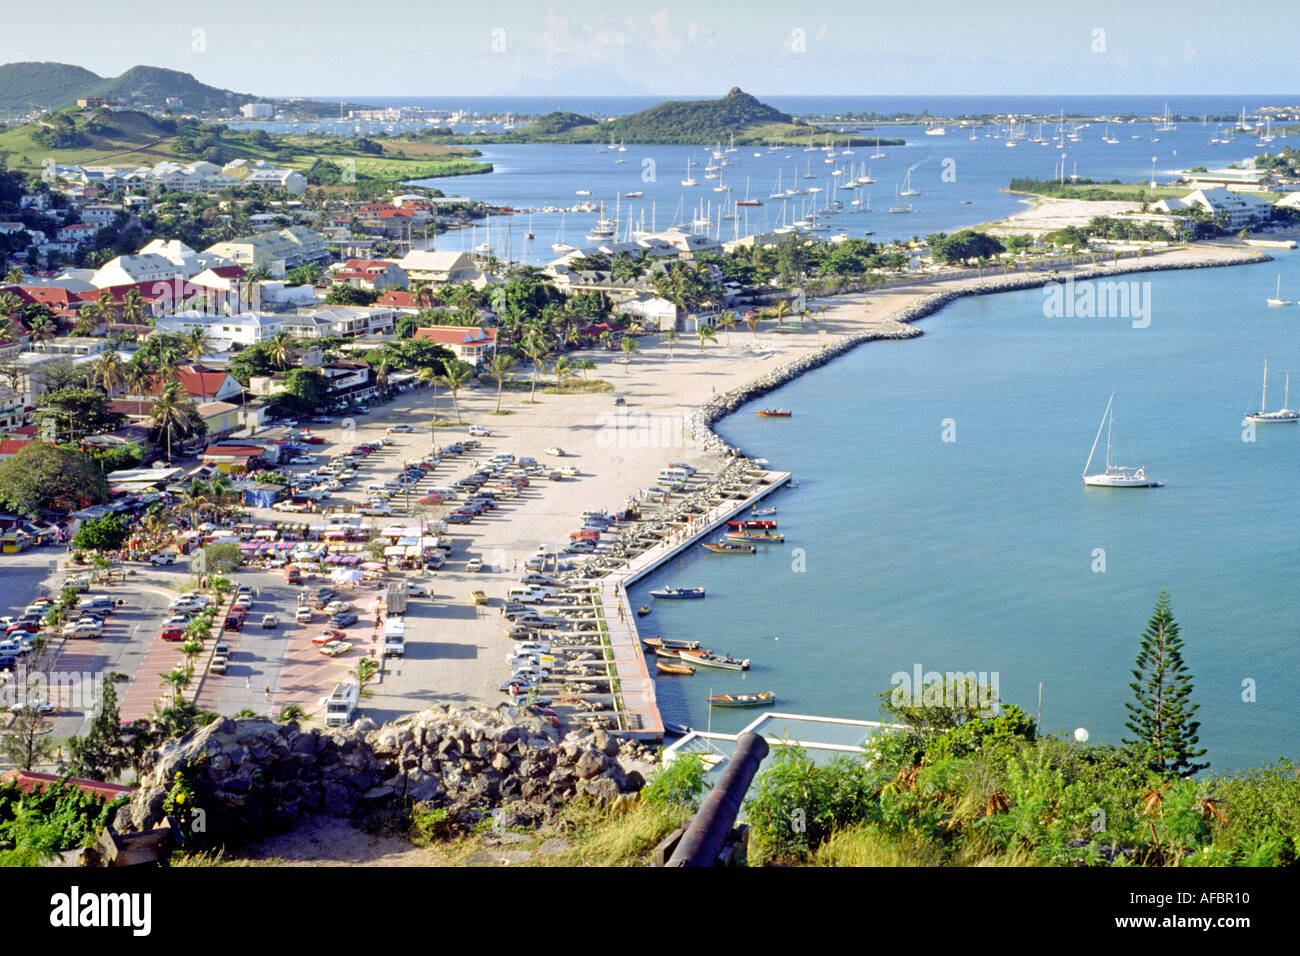 A view of the Simpson Bay lagoon and the town of Marigot on the French island of Saint Martin in the Caribbean. - Stock Image